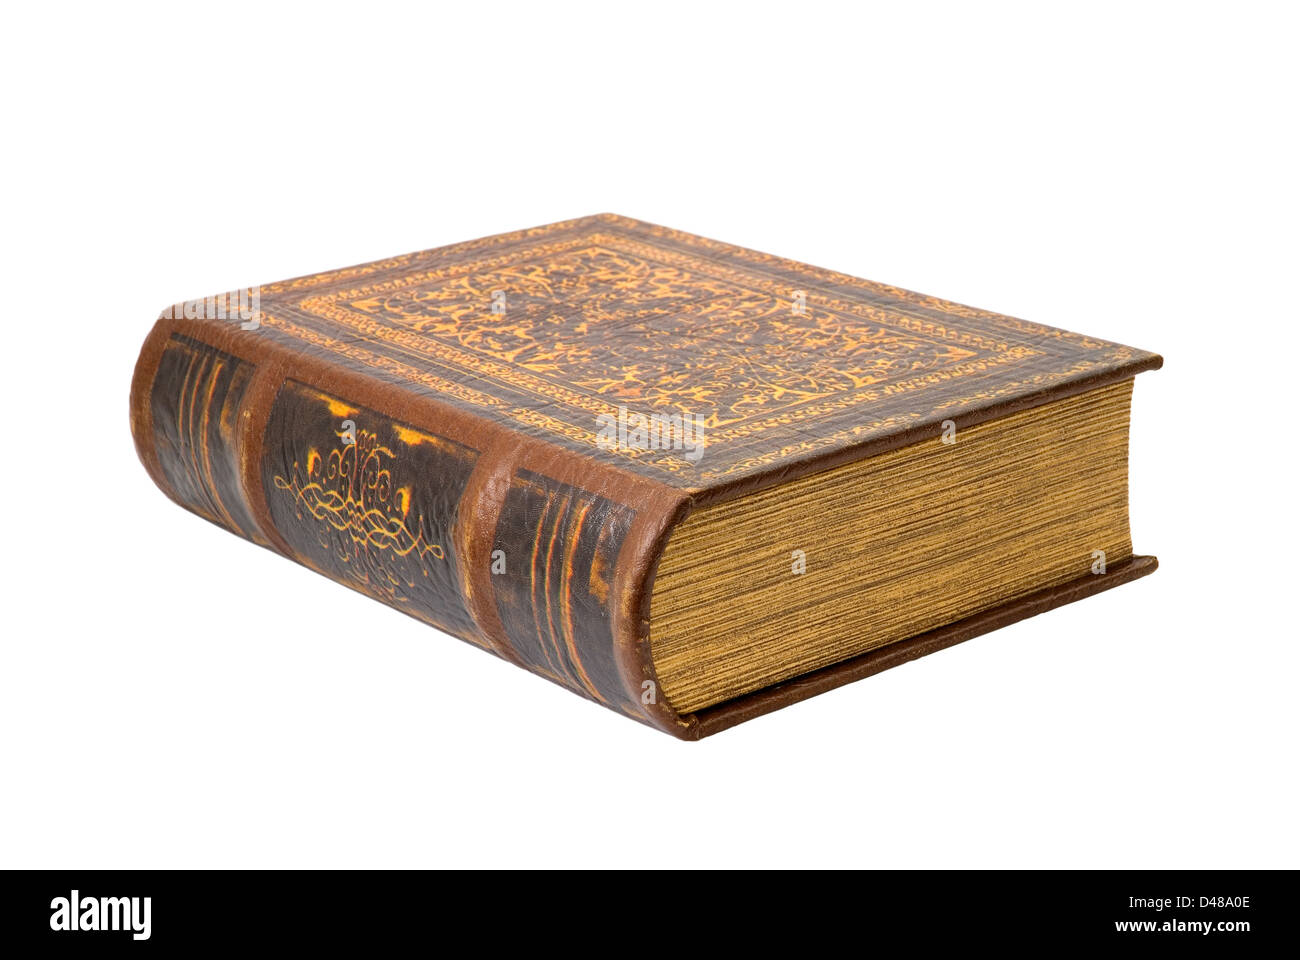 Ancient book is photographed on the white background - Stock Image